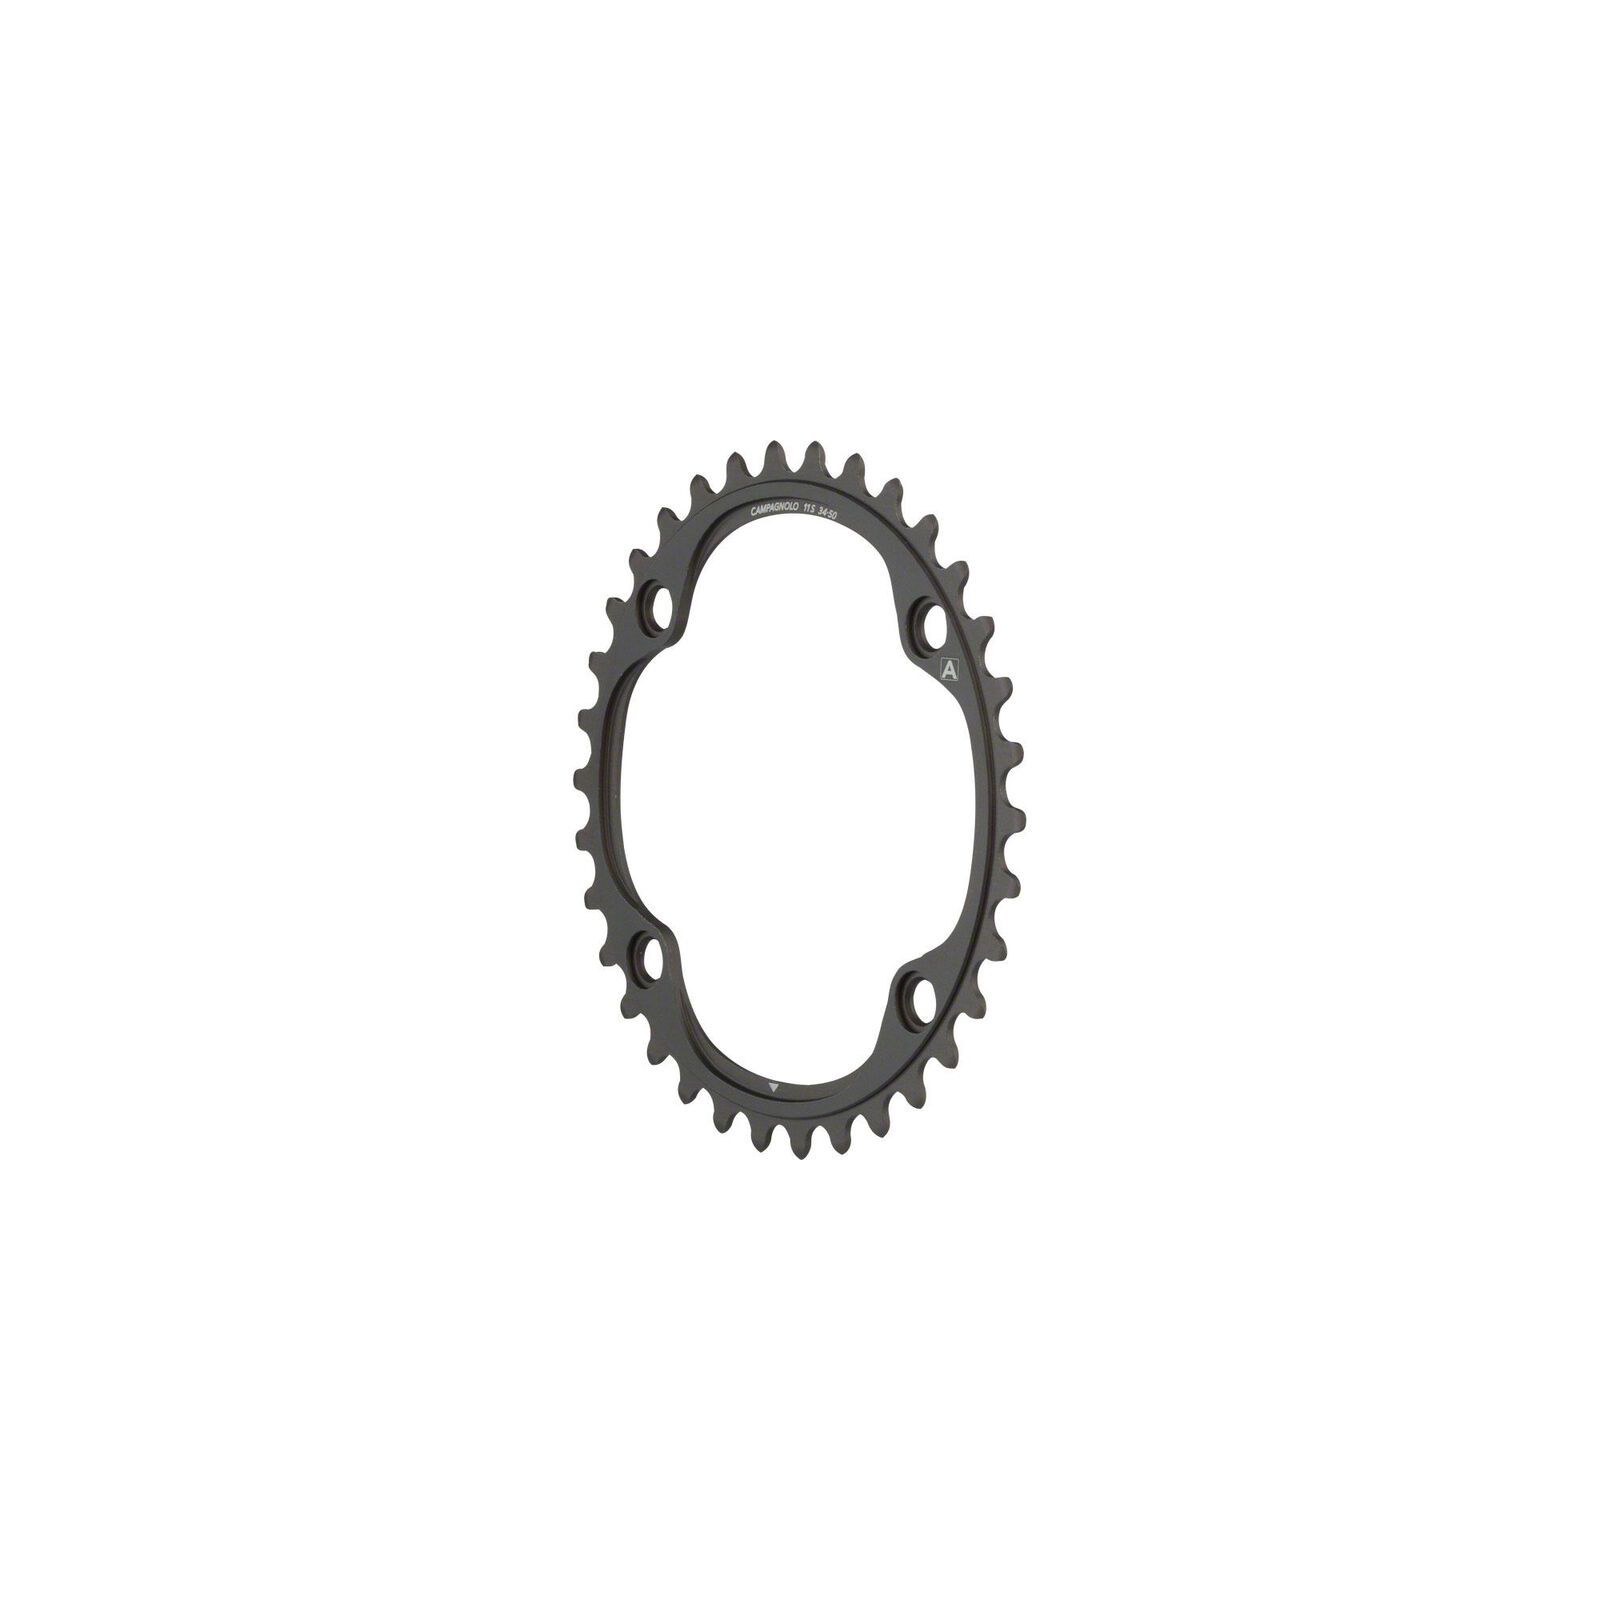 Campagnolo 11-S  39T Chainring & Bolts 2015+ Super Record Record Chorus  online at best price